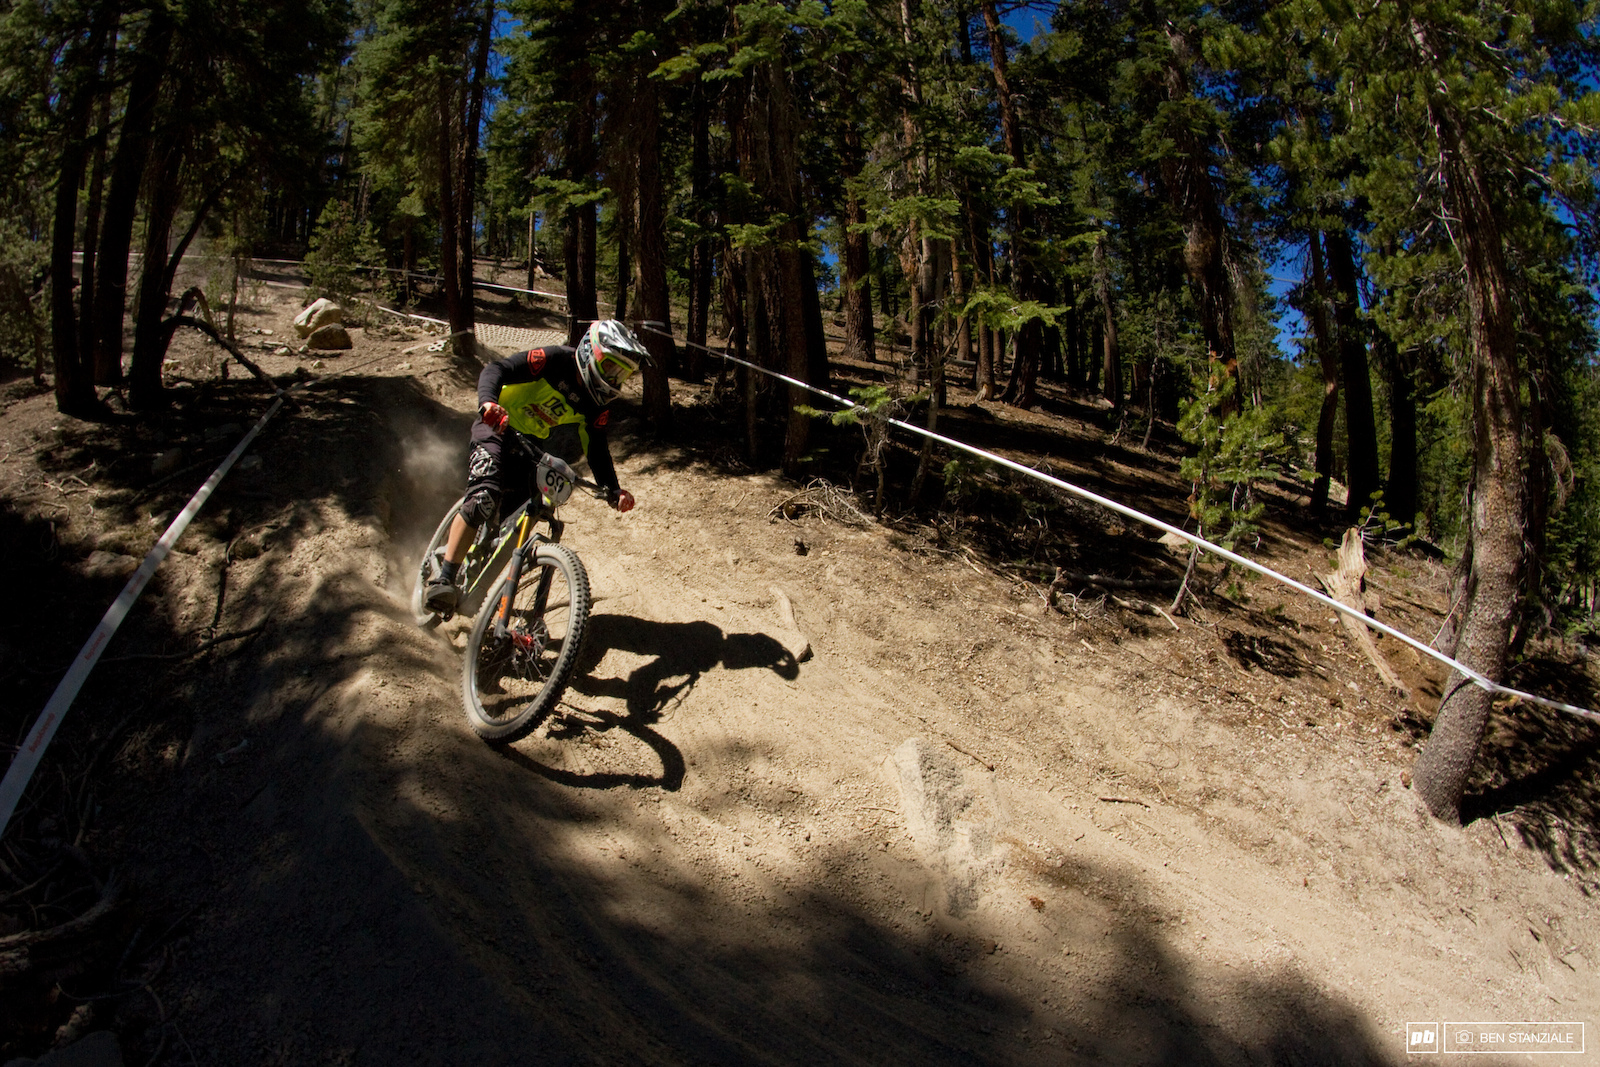 No shortage of California dryness. With hundreds of riders coming down the hill the tracks get rougher and more blown out as the day goes on.